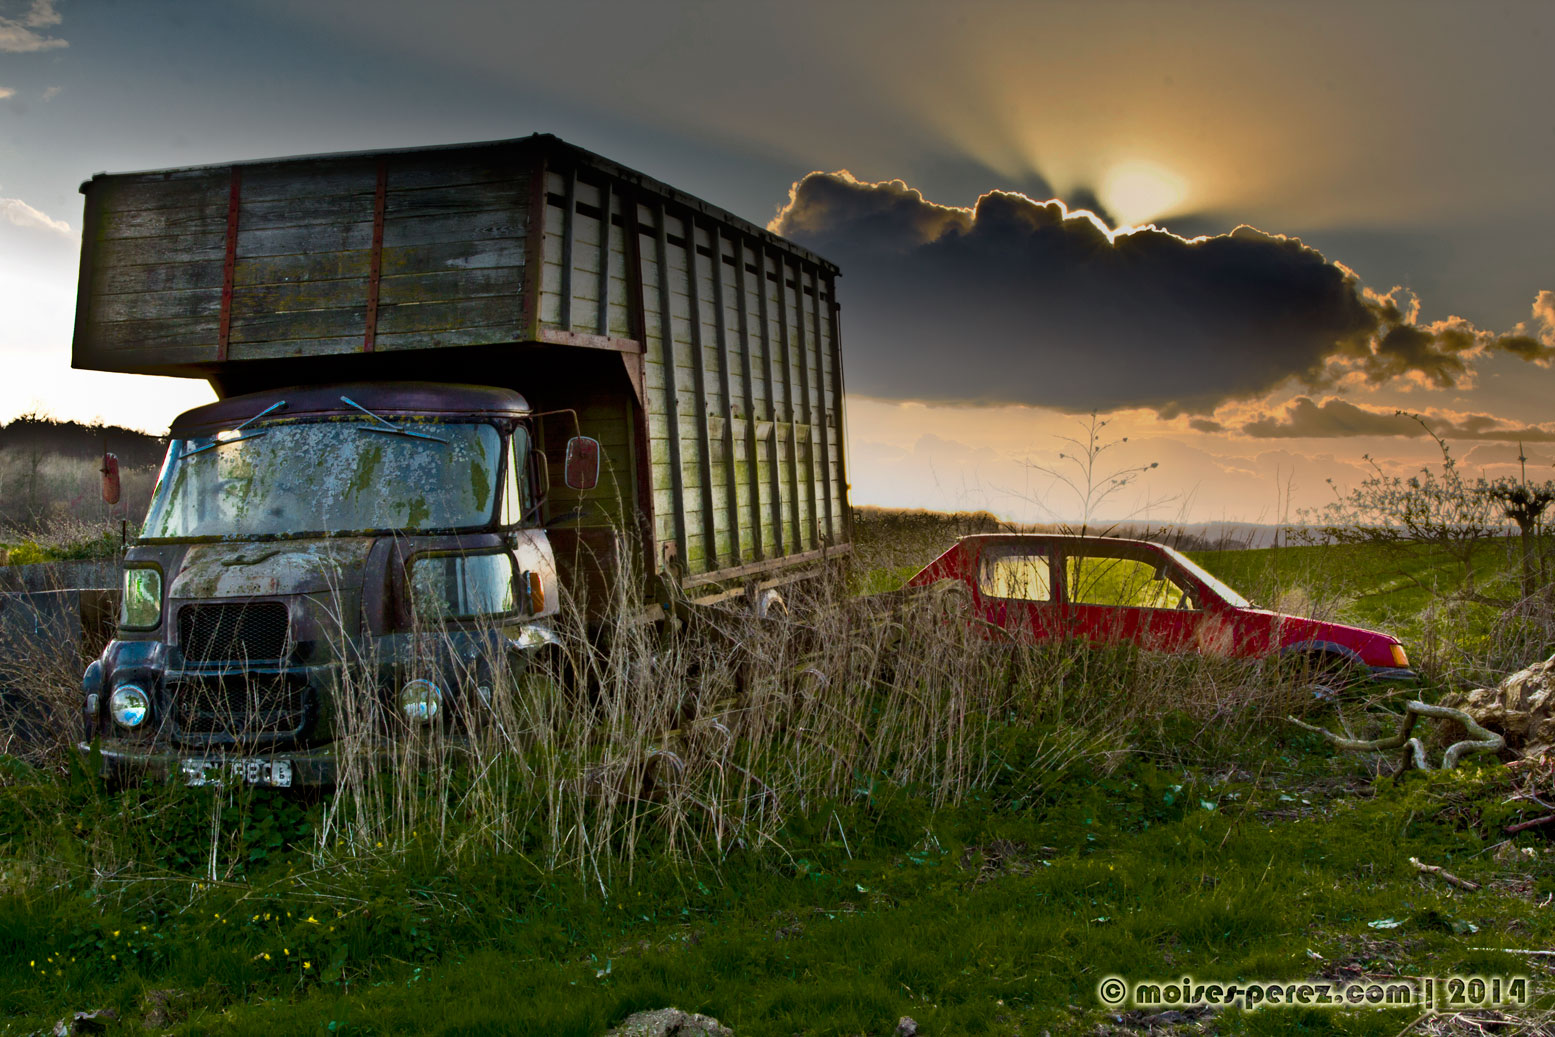 Abandoned Truck in England